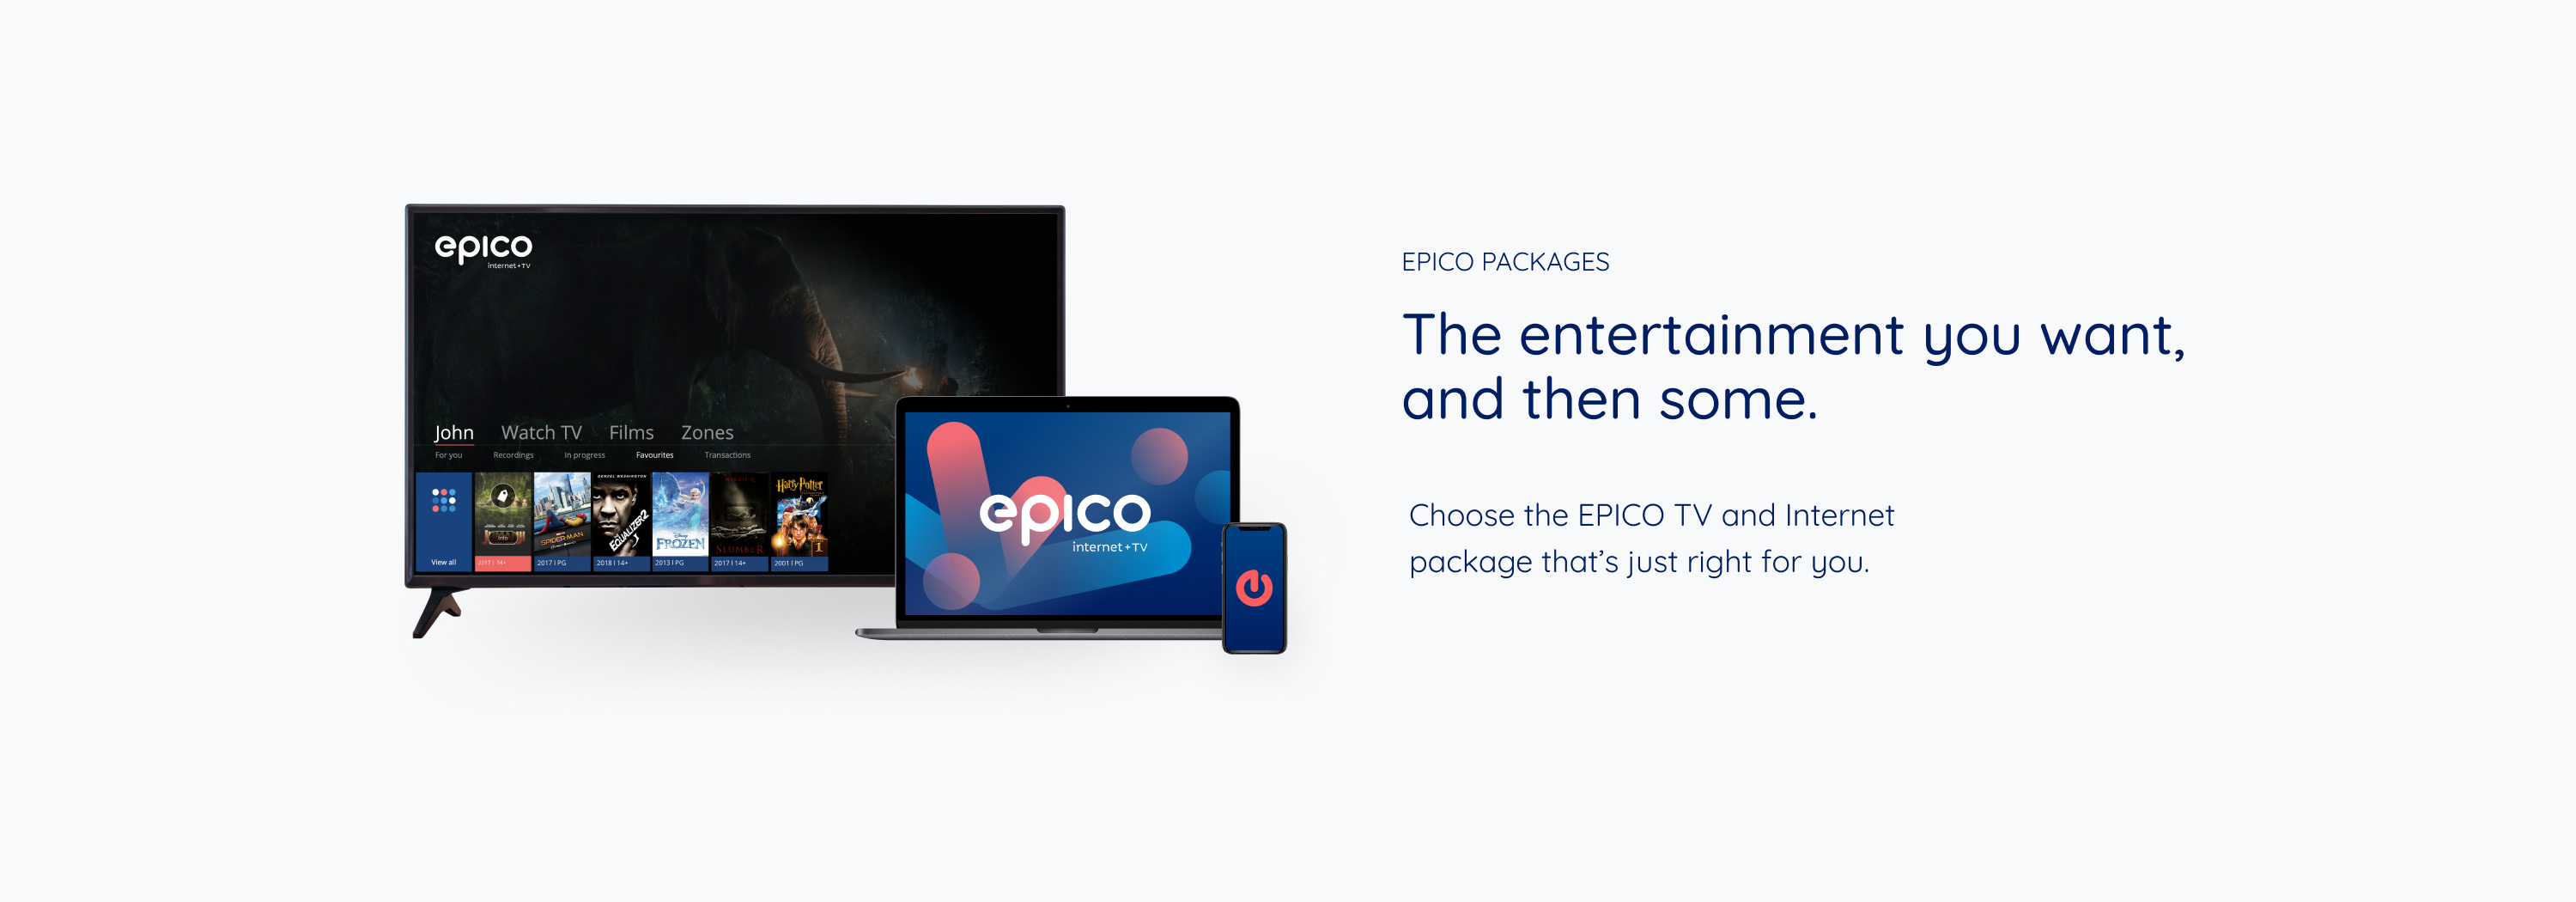 EPICO packages The entertainment you want, and then some.  Choose the EPICO TV and Internet package that's just right for you.